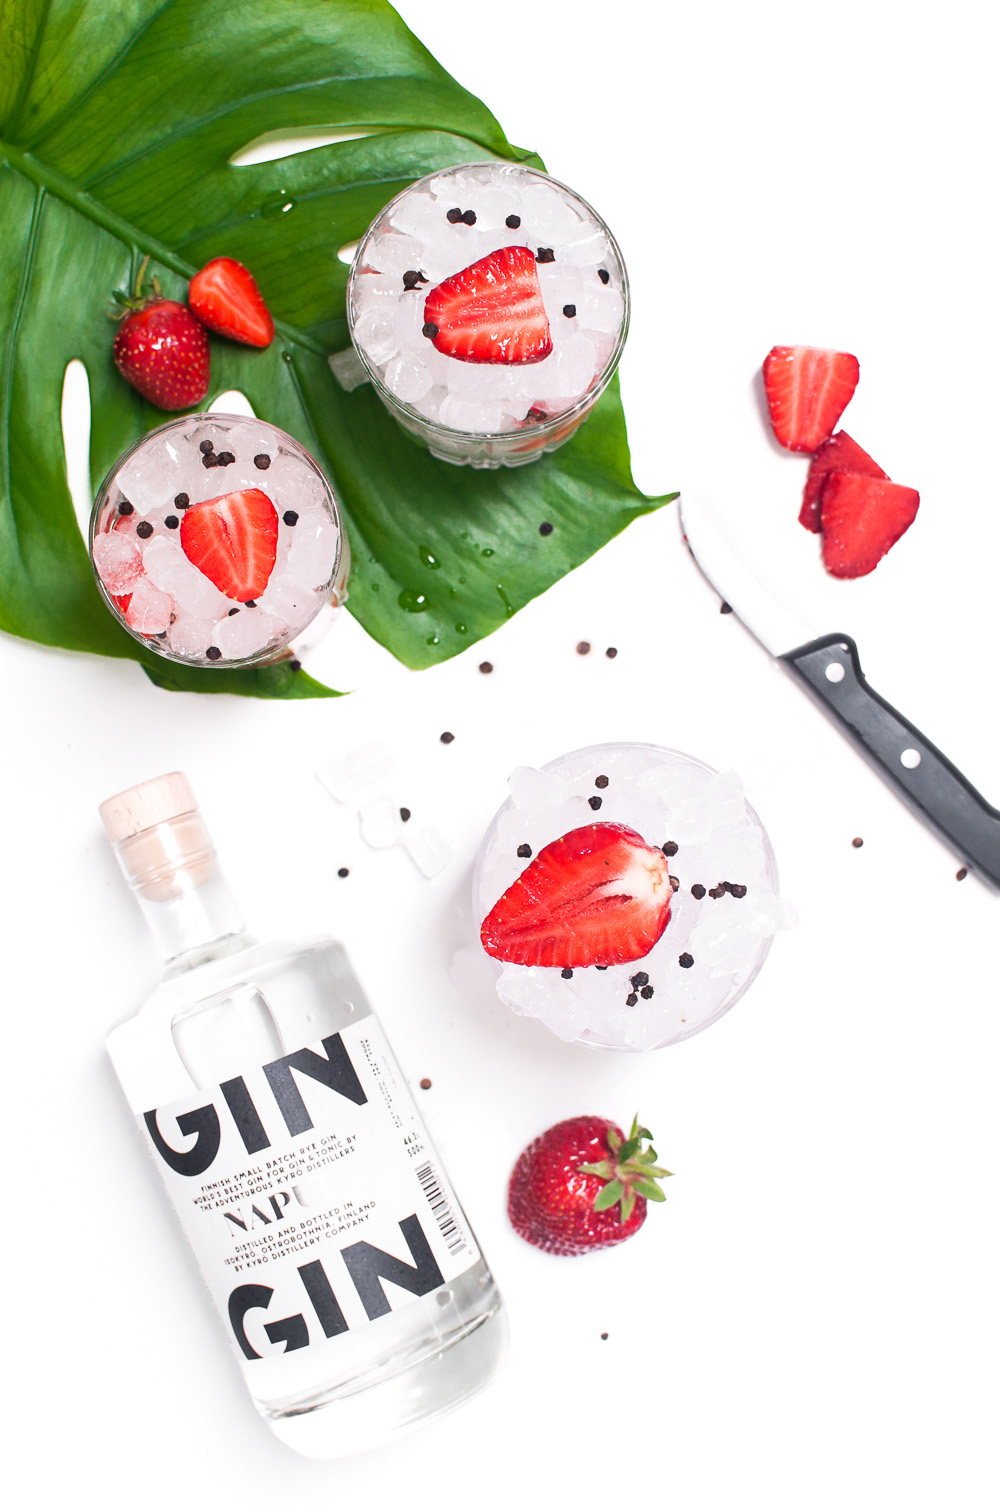 Strawberry Black Pepper Gin - Napue Gin http://wp.me/p6GO5w-W1